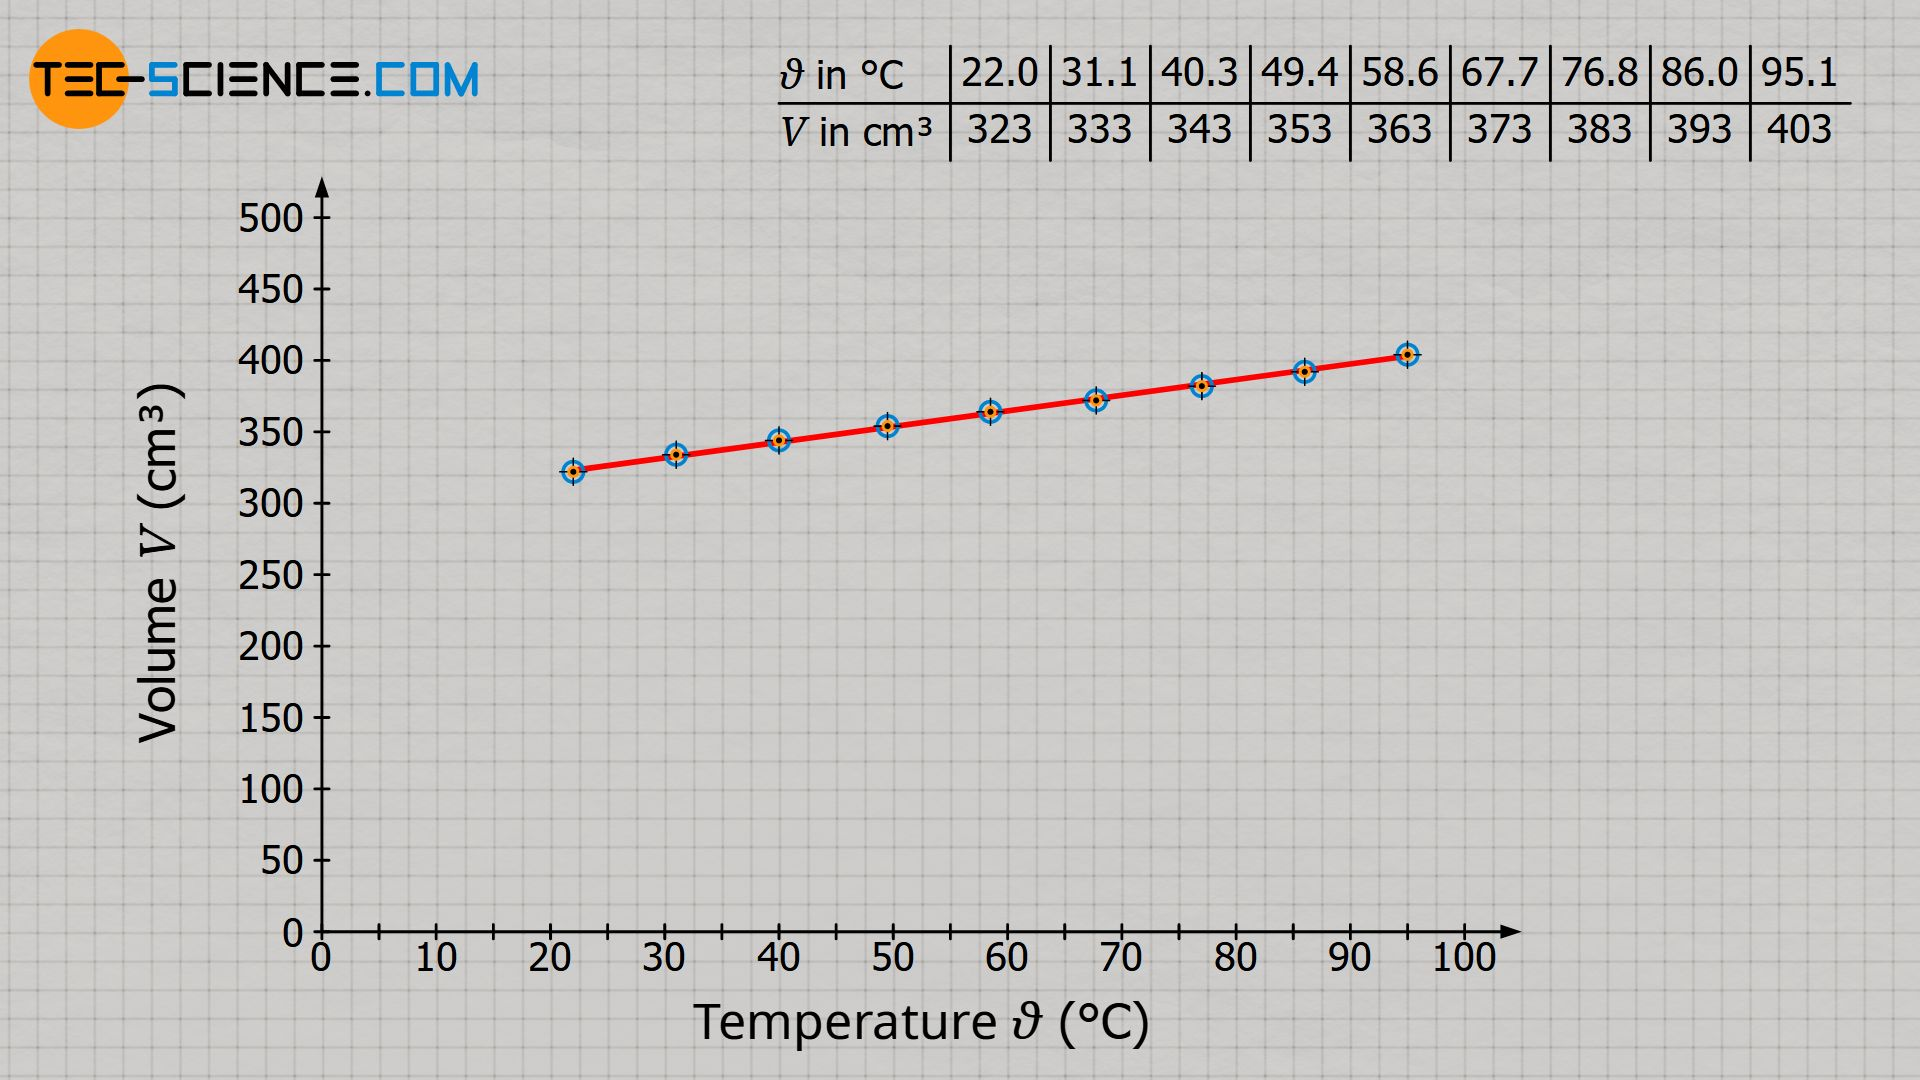 Relationship between temperature (in the unit degree Celsius) and volume at constant pressure